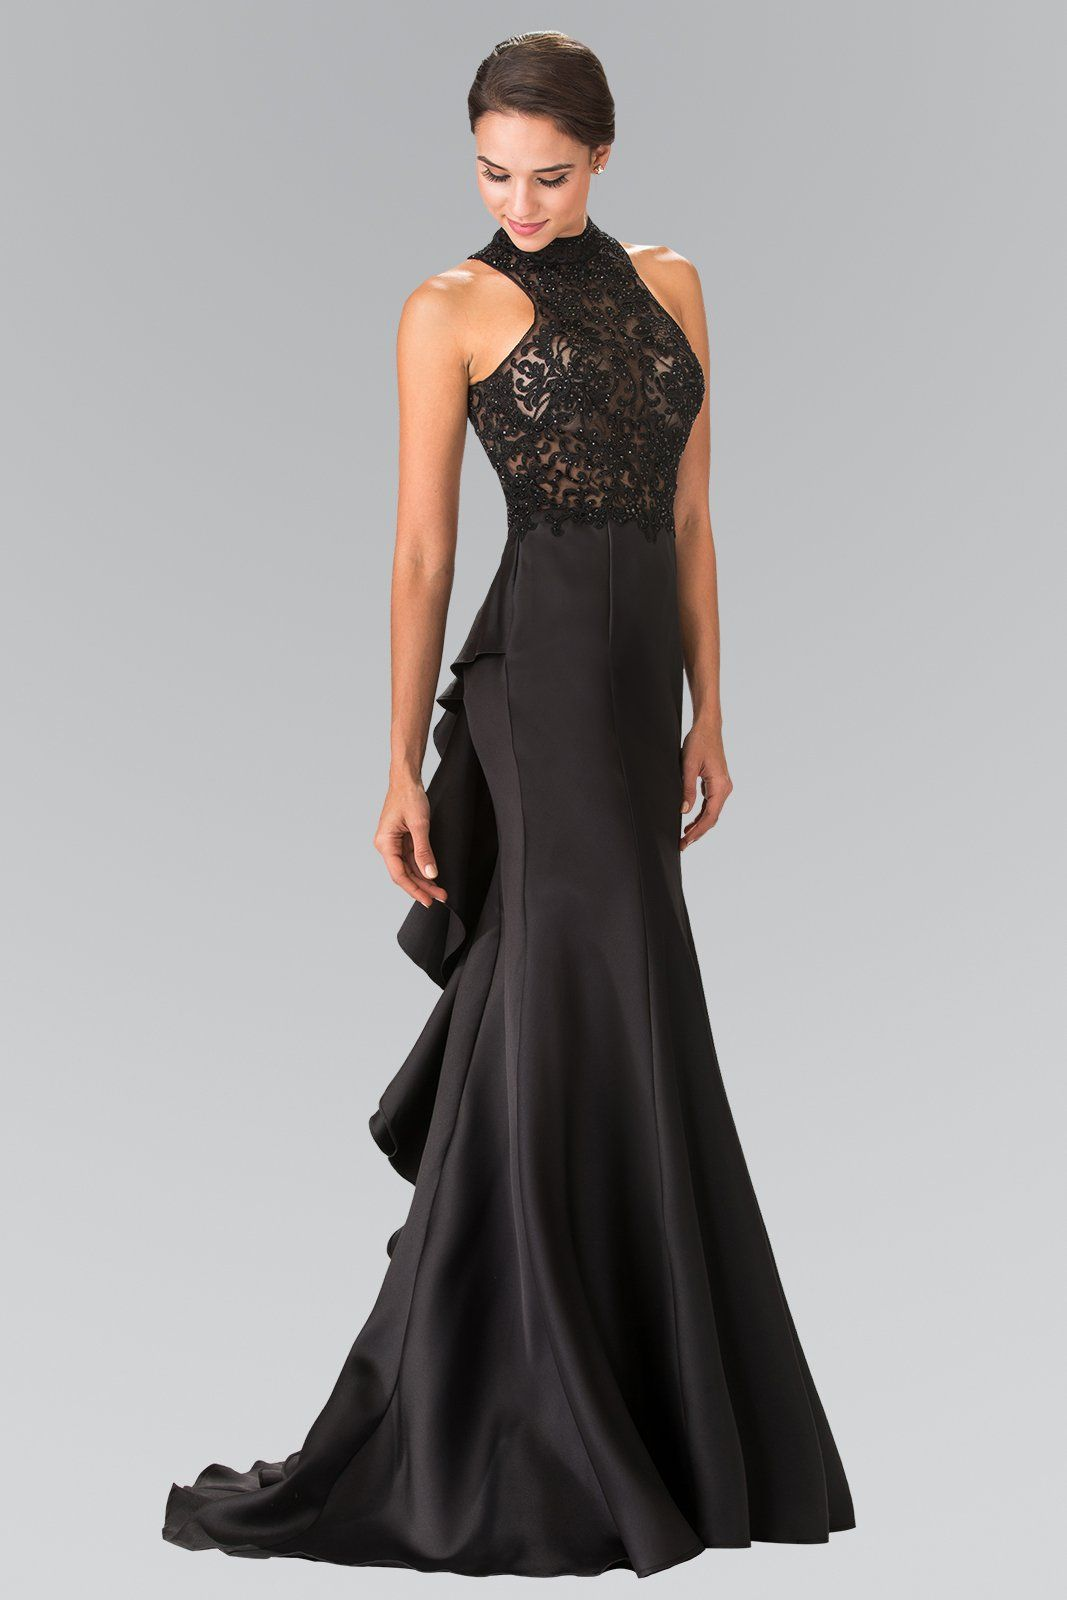 Simply Stunning Sexy Prom Dresses Pageant Evening Gowns Find Sexy